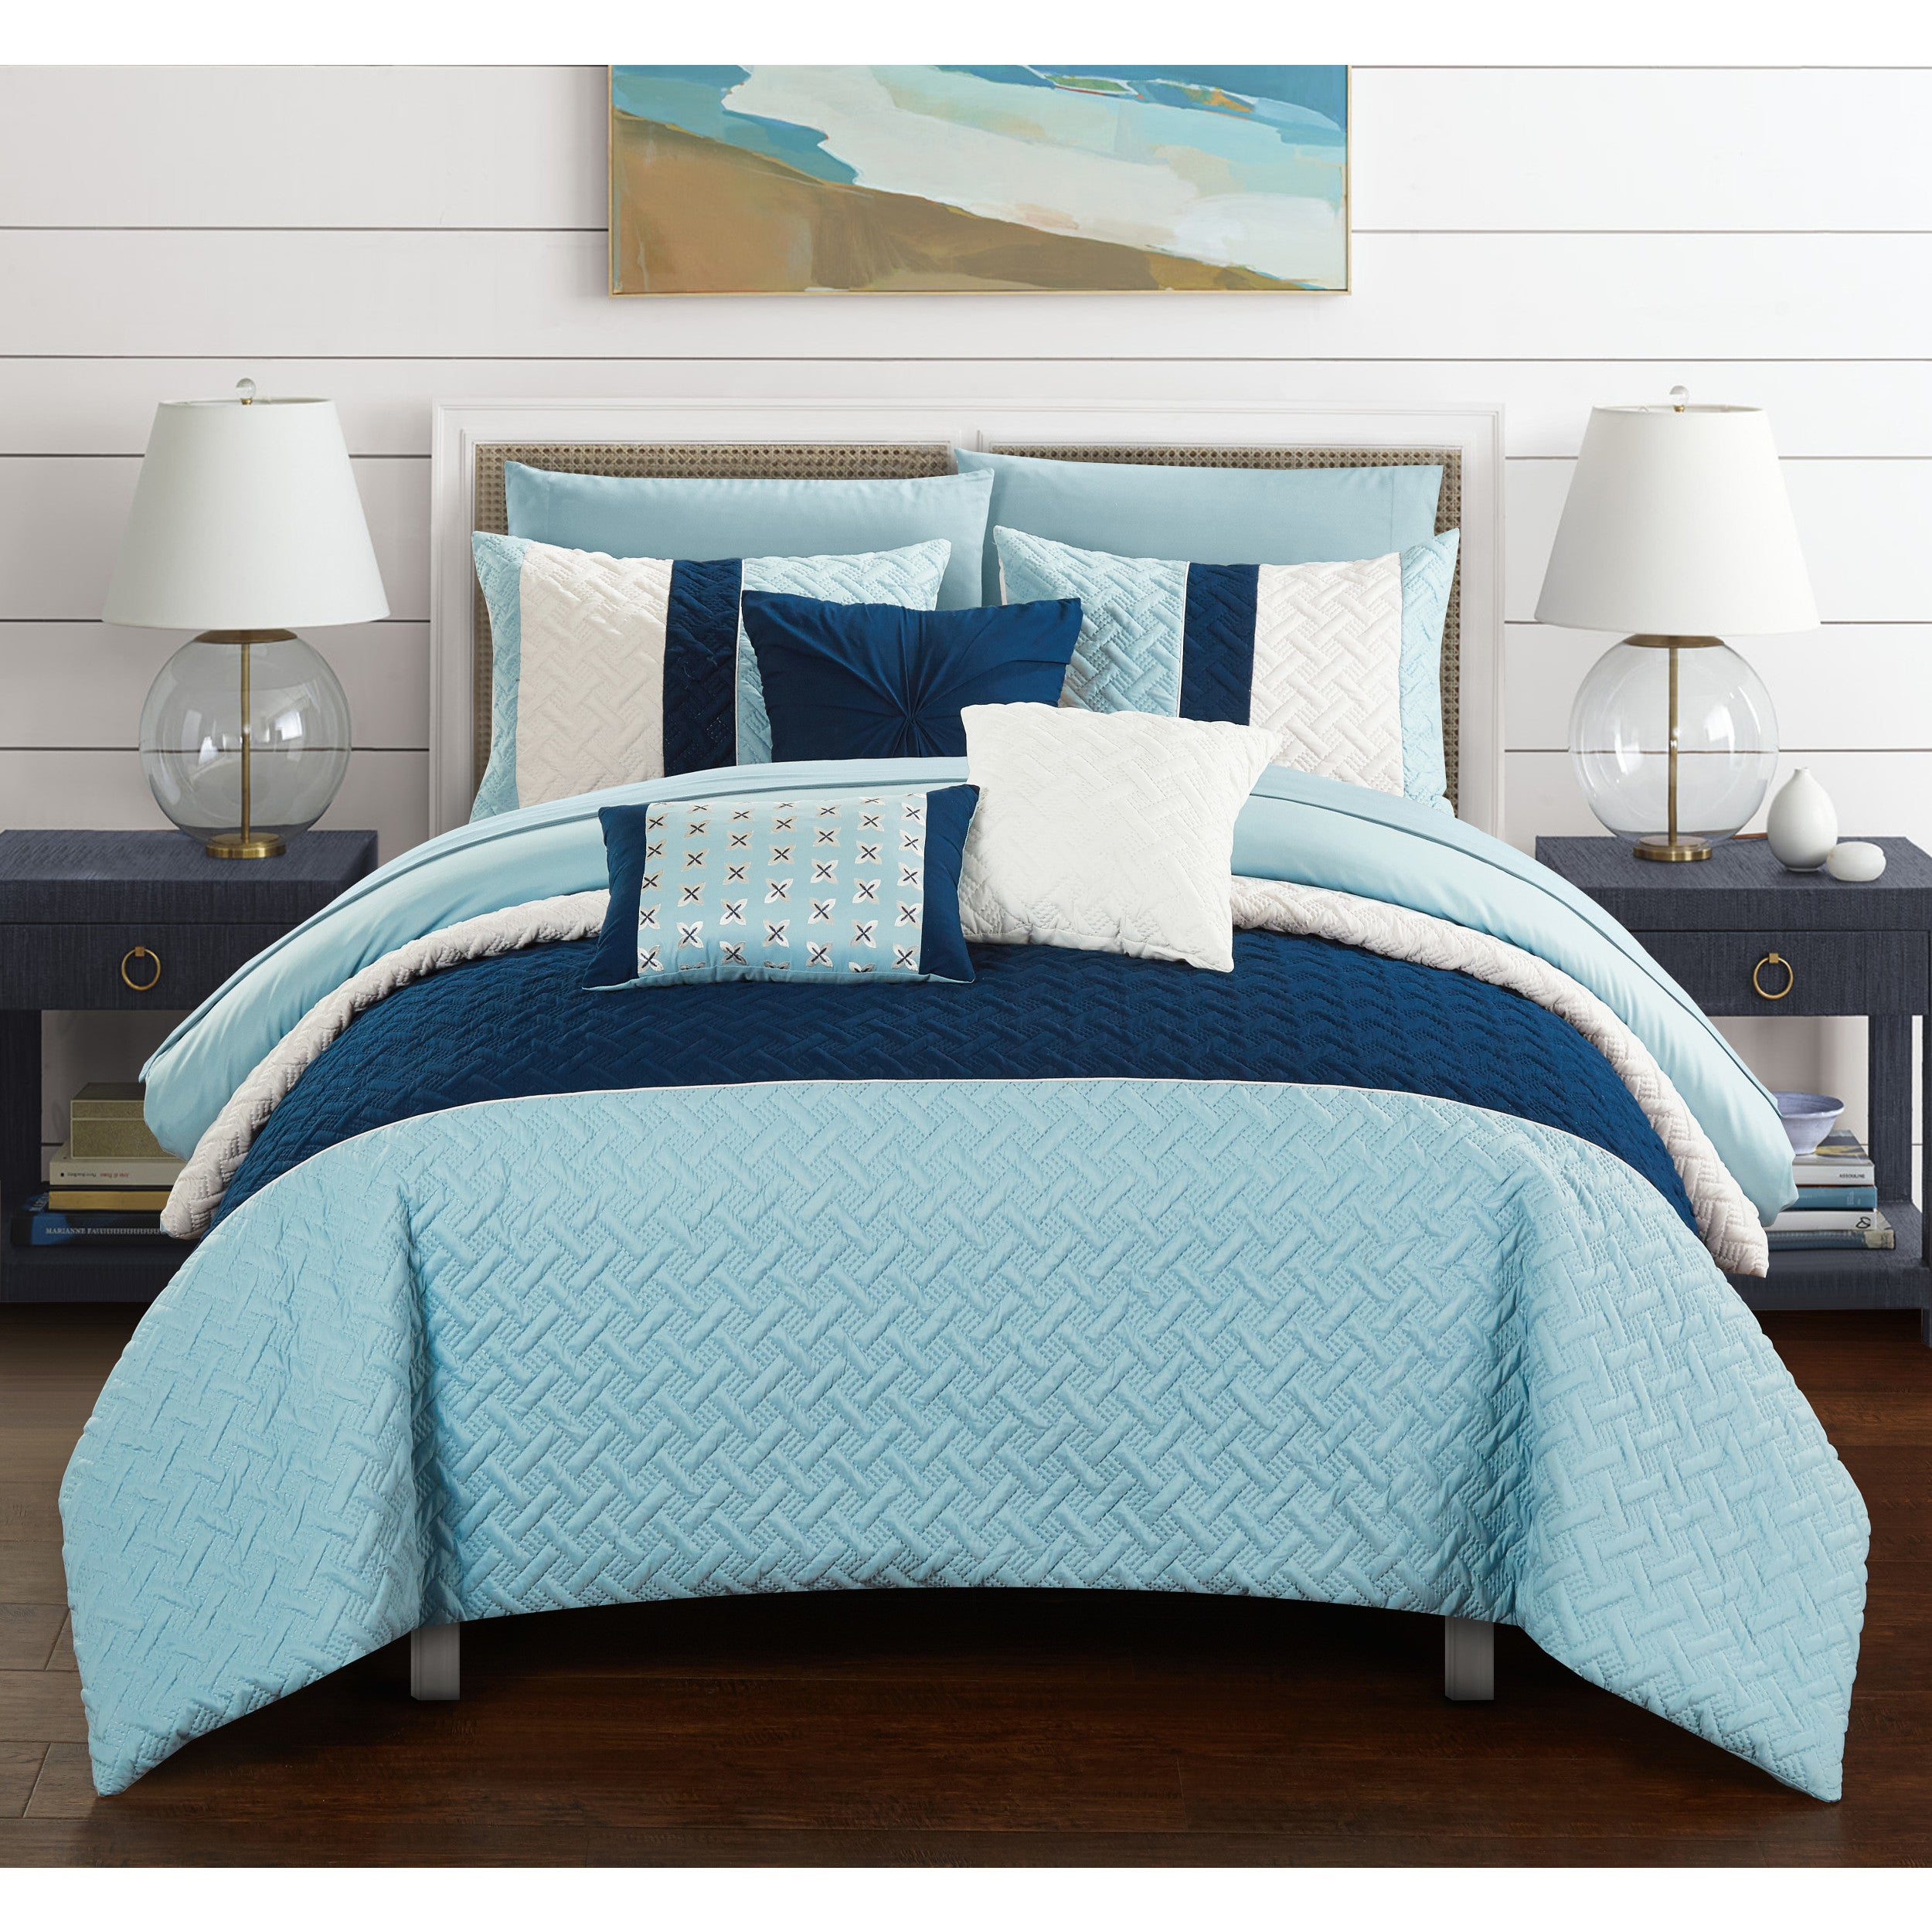 and reversible includes colors button features piece envelope tucked shams interior cover on harper duvet pin sham matching solid set color comforter the